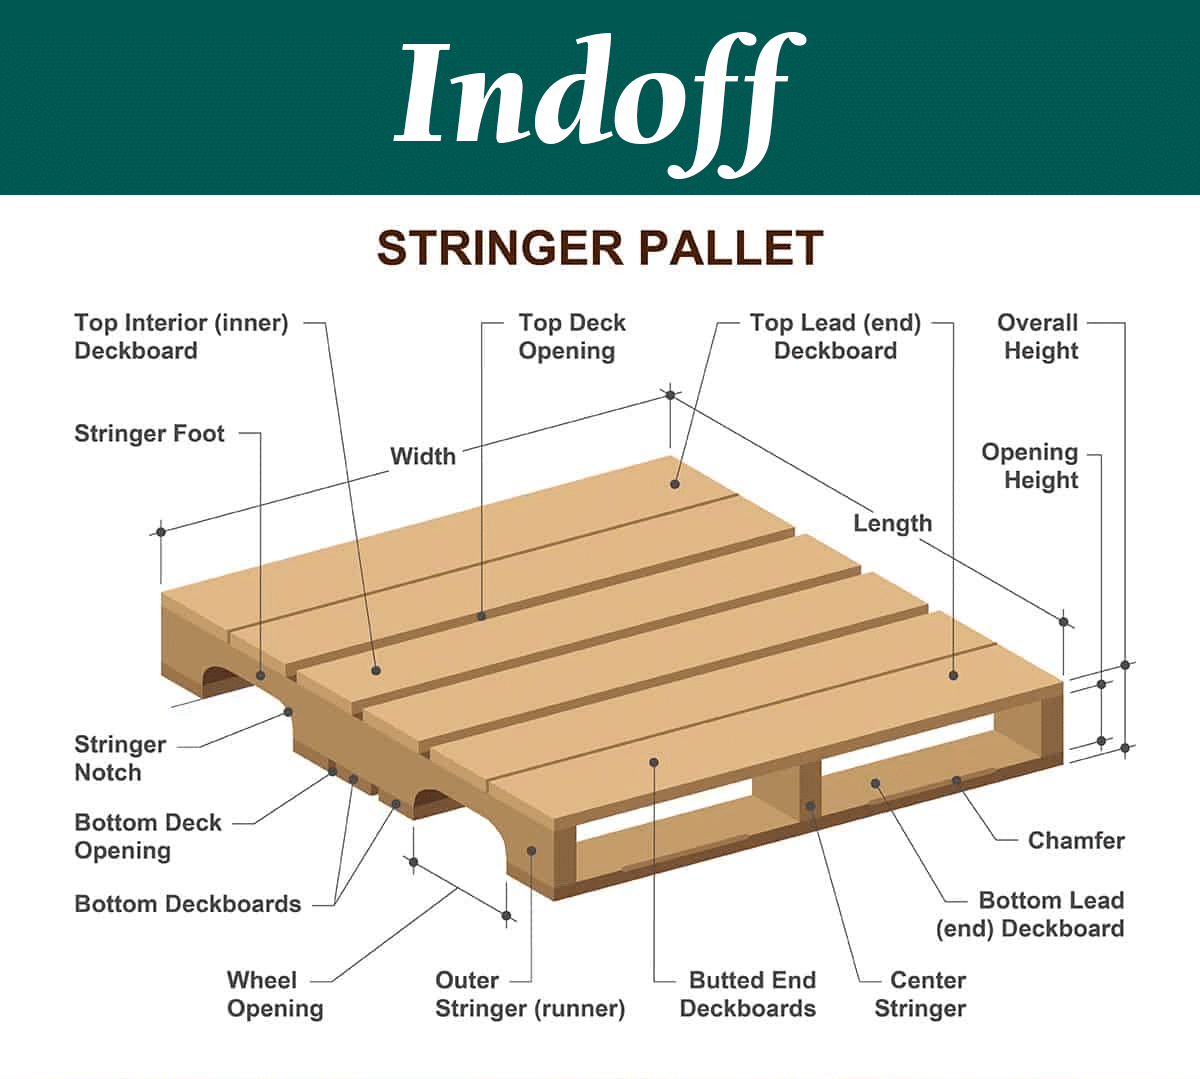 Different parts of a pallet labeled